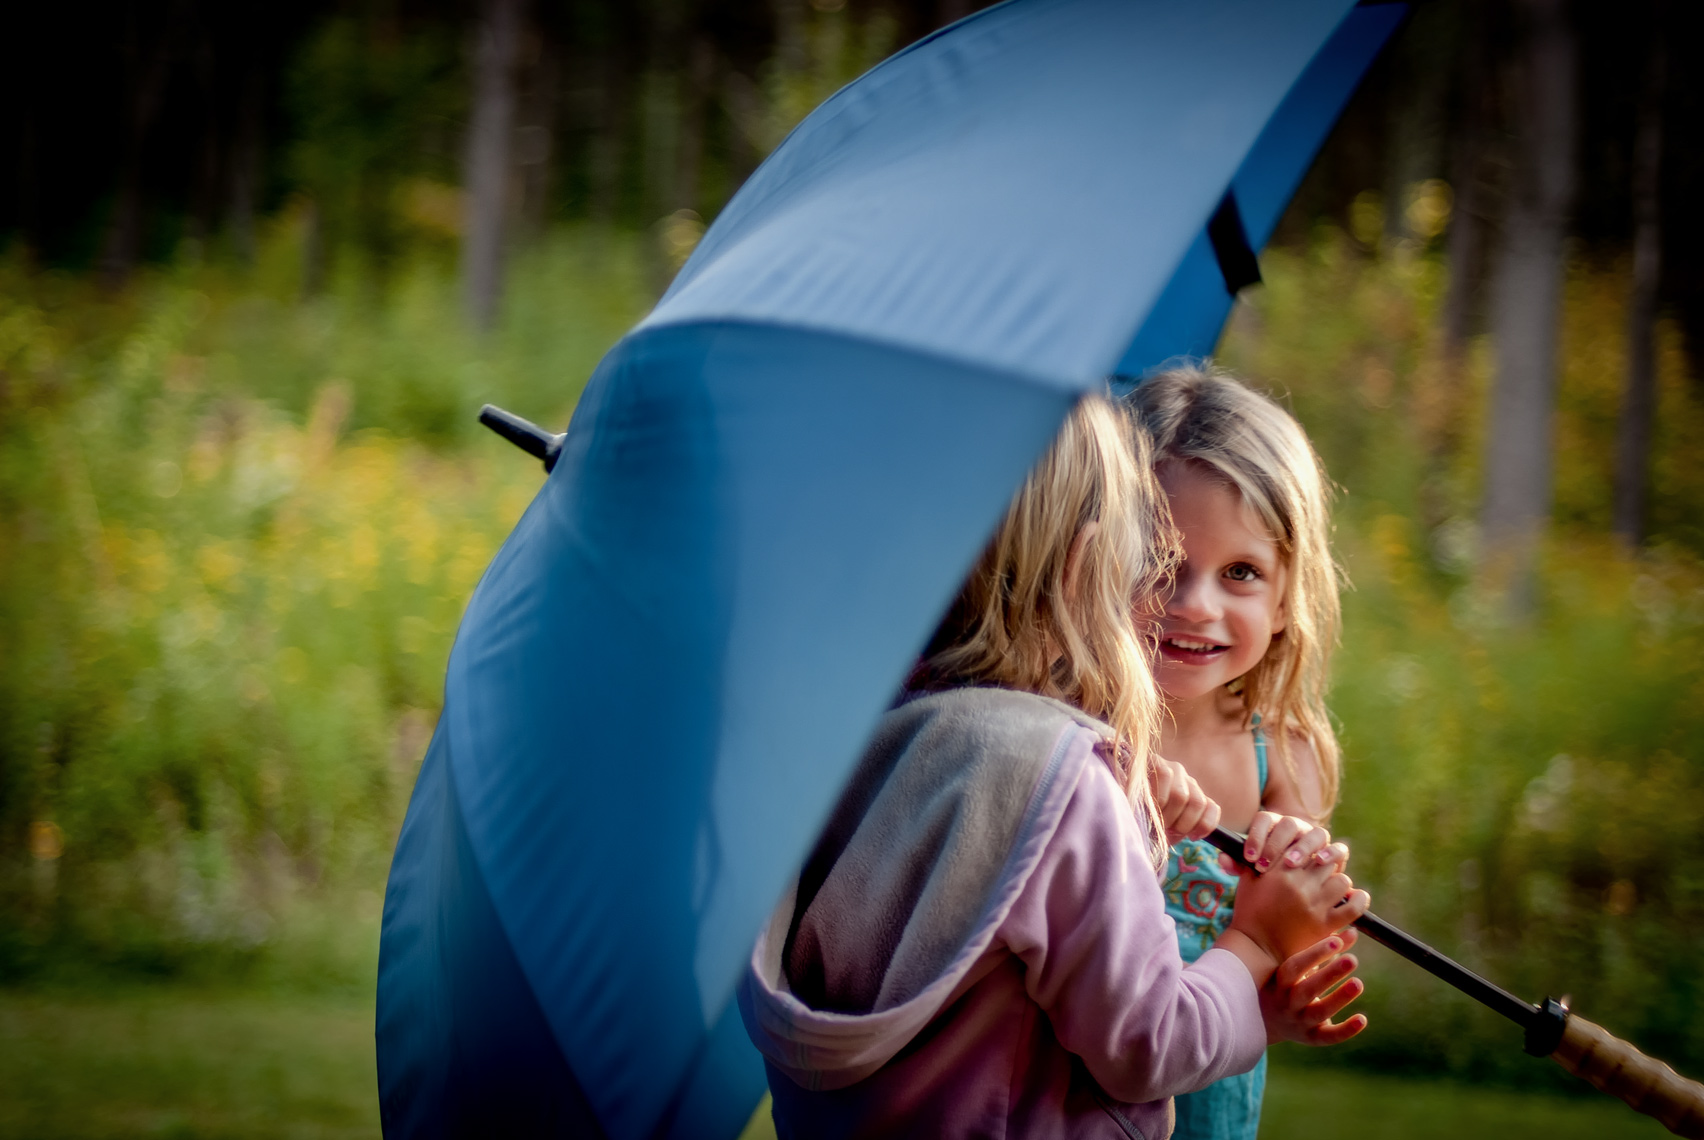 Sisters playing with umbrella